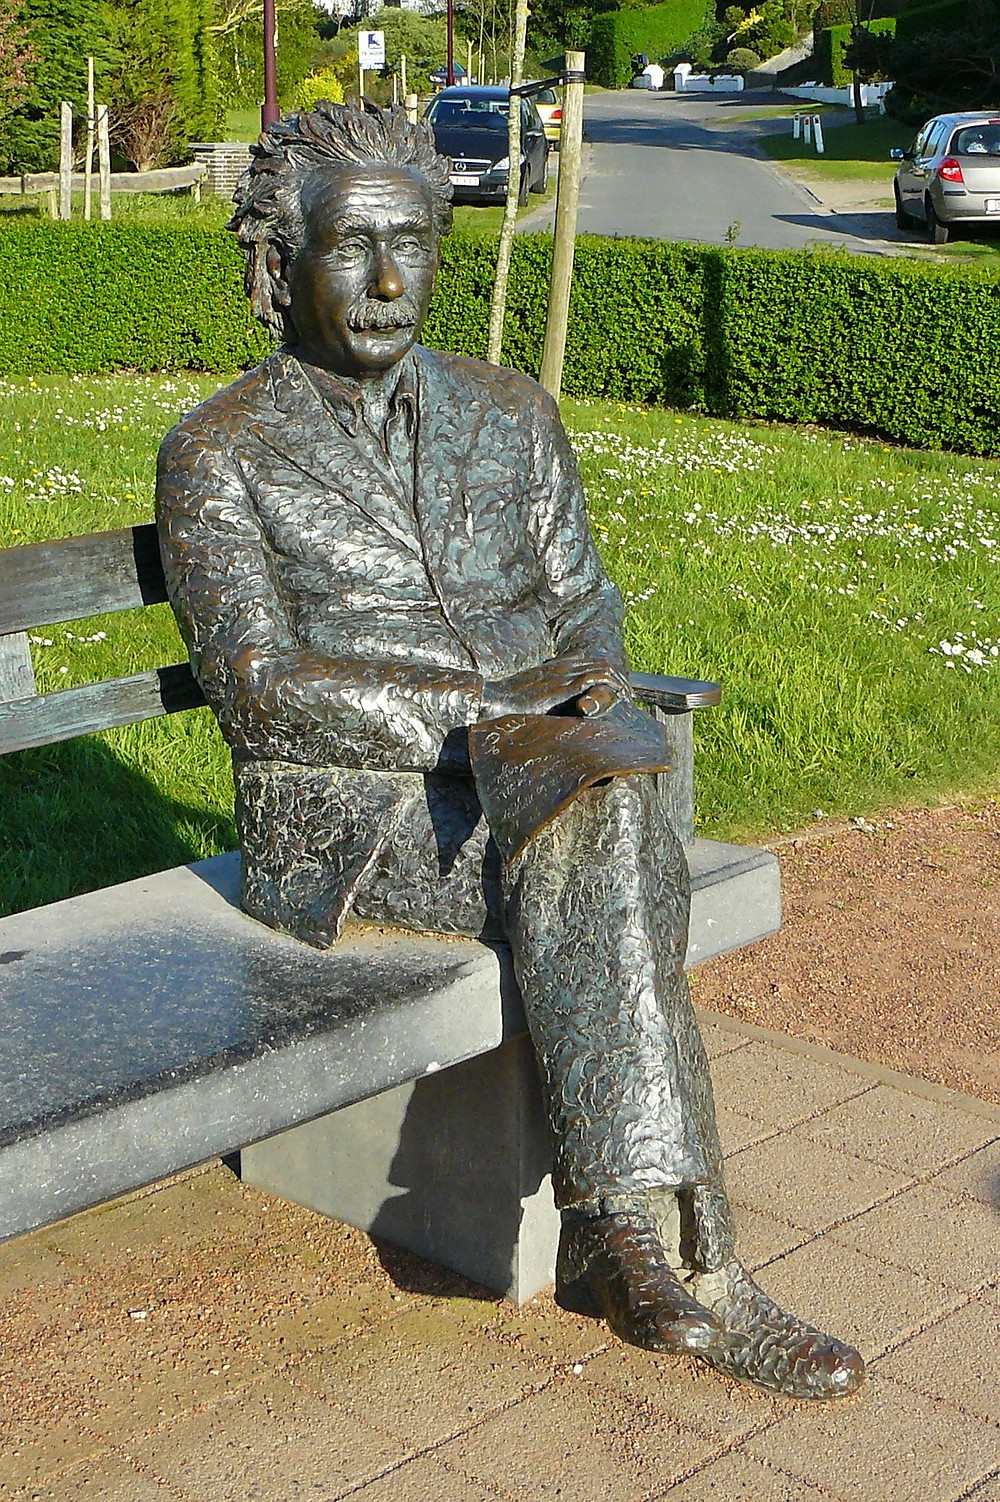 A statue of Albert Einstein is sitting on a bench reading.